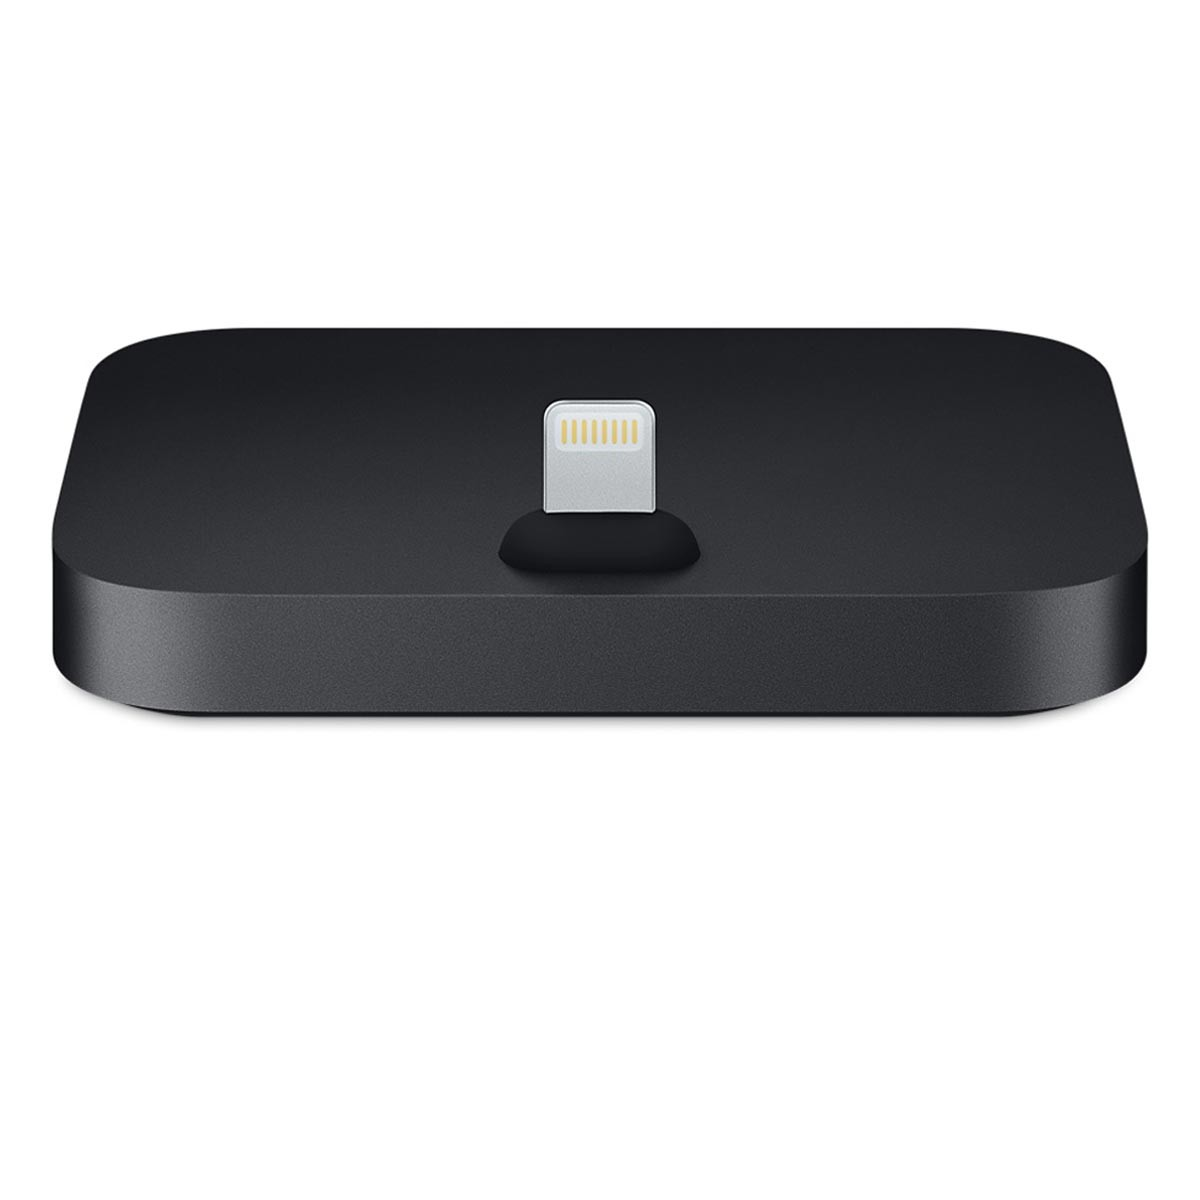 iPhone Lightning Dock – černý mnn62zm/a